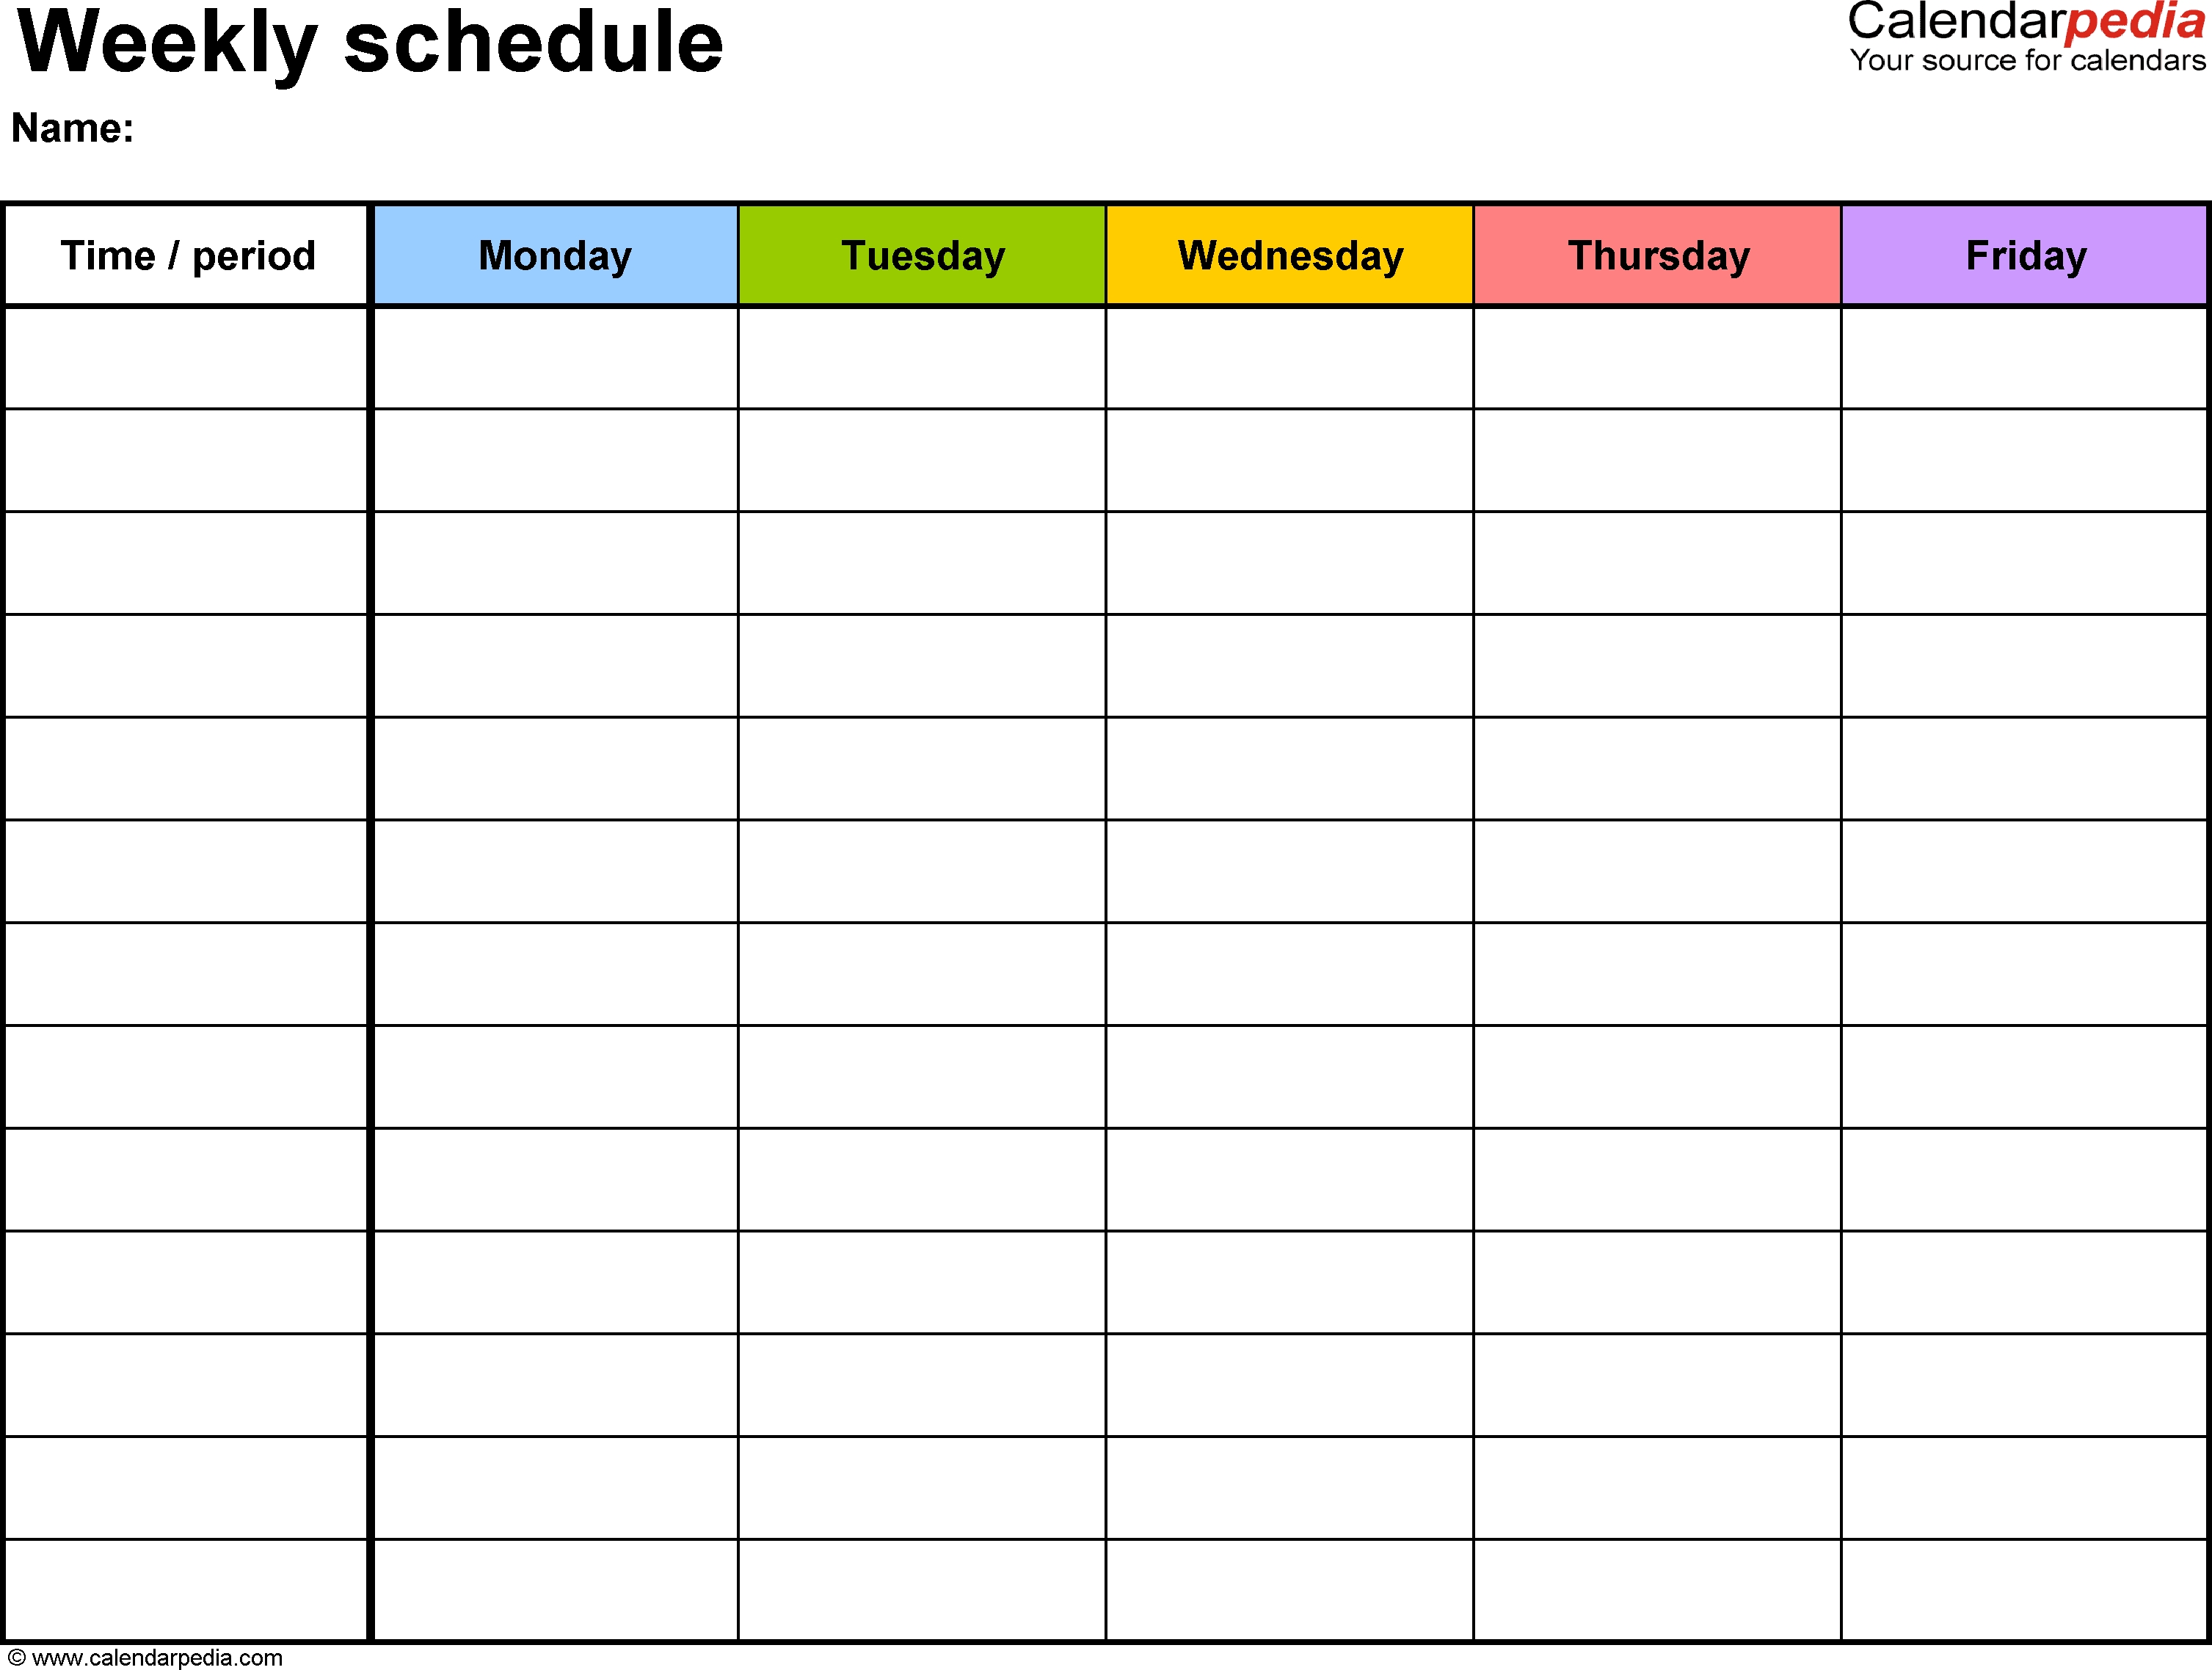 Free Weekly Schedule Templates For Word - 18 Templates with Blank Weekly Schedule Template Printable